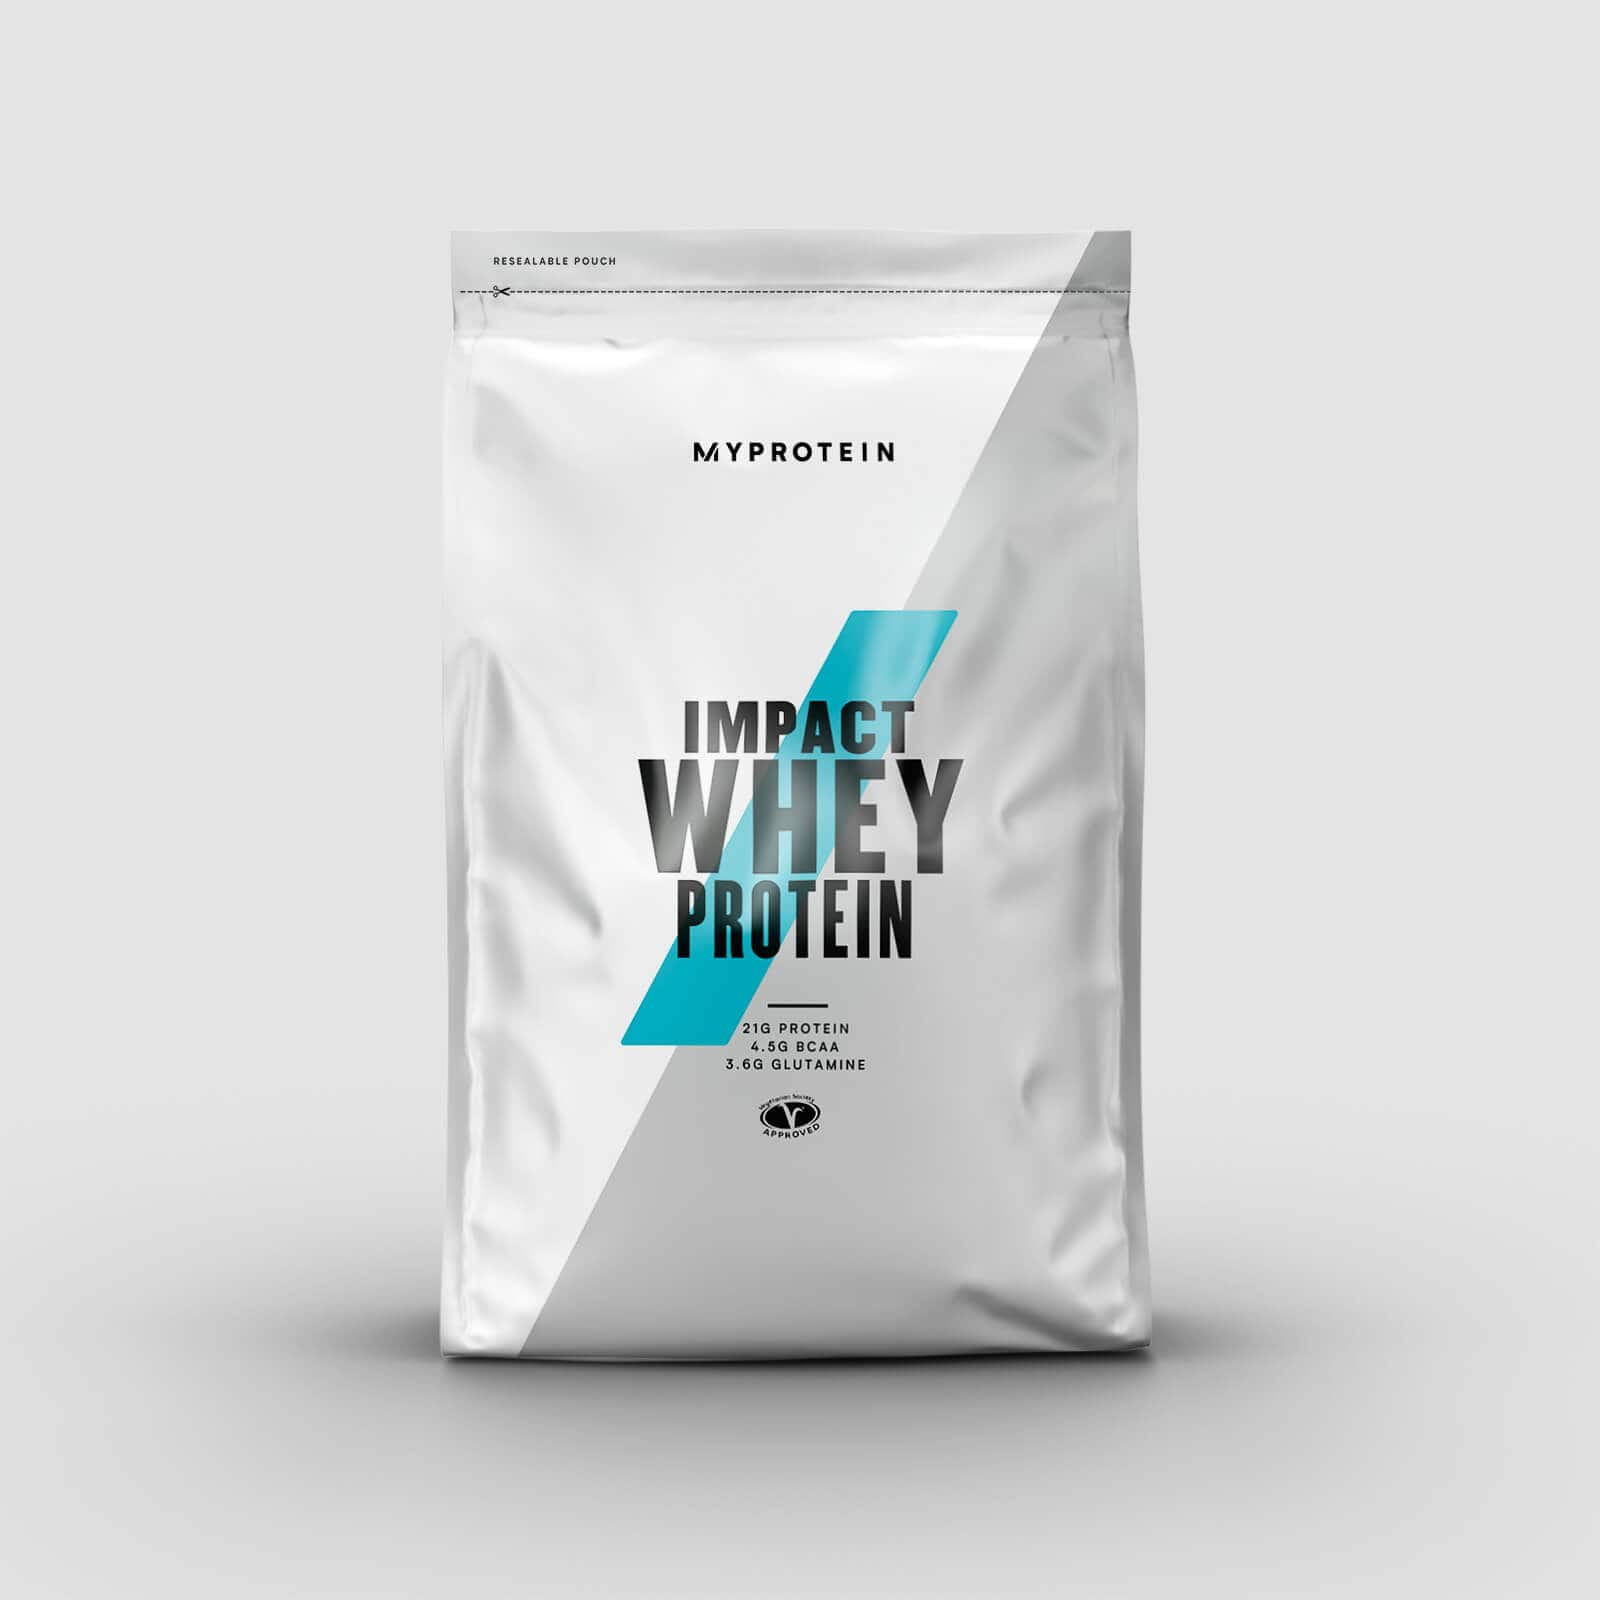 Myprotein 5.5lbs Impact Whey Protein (Select Flavors) $28 + FS